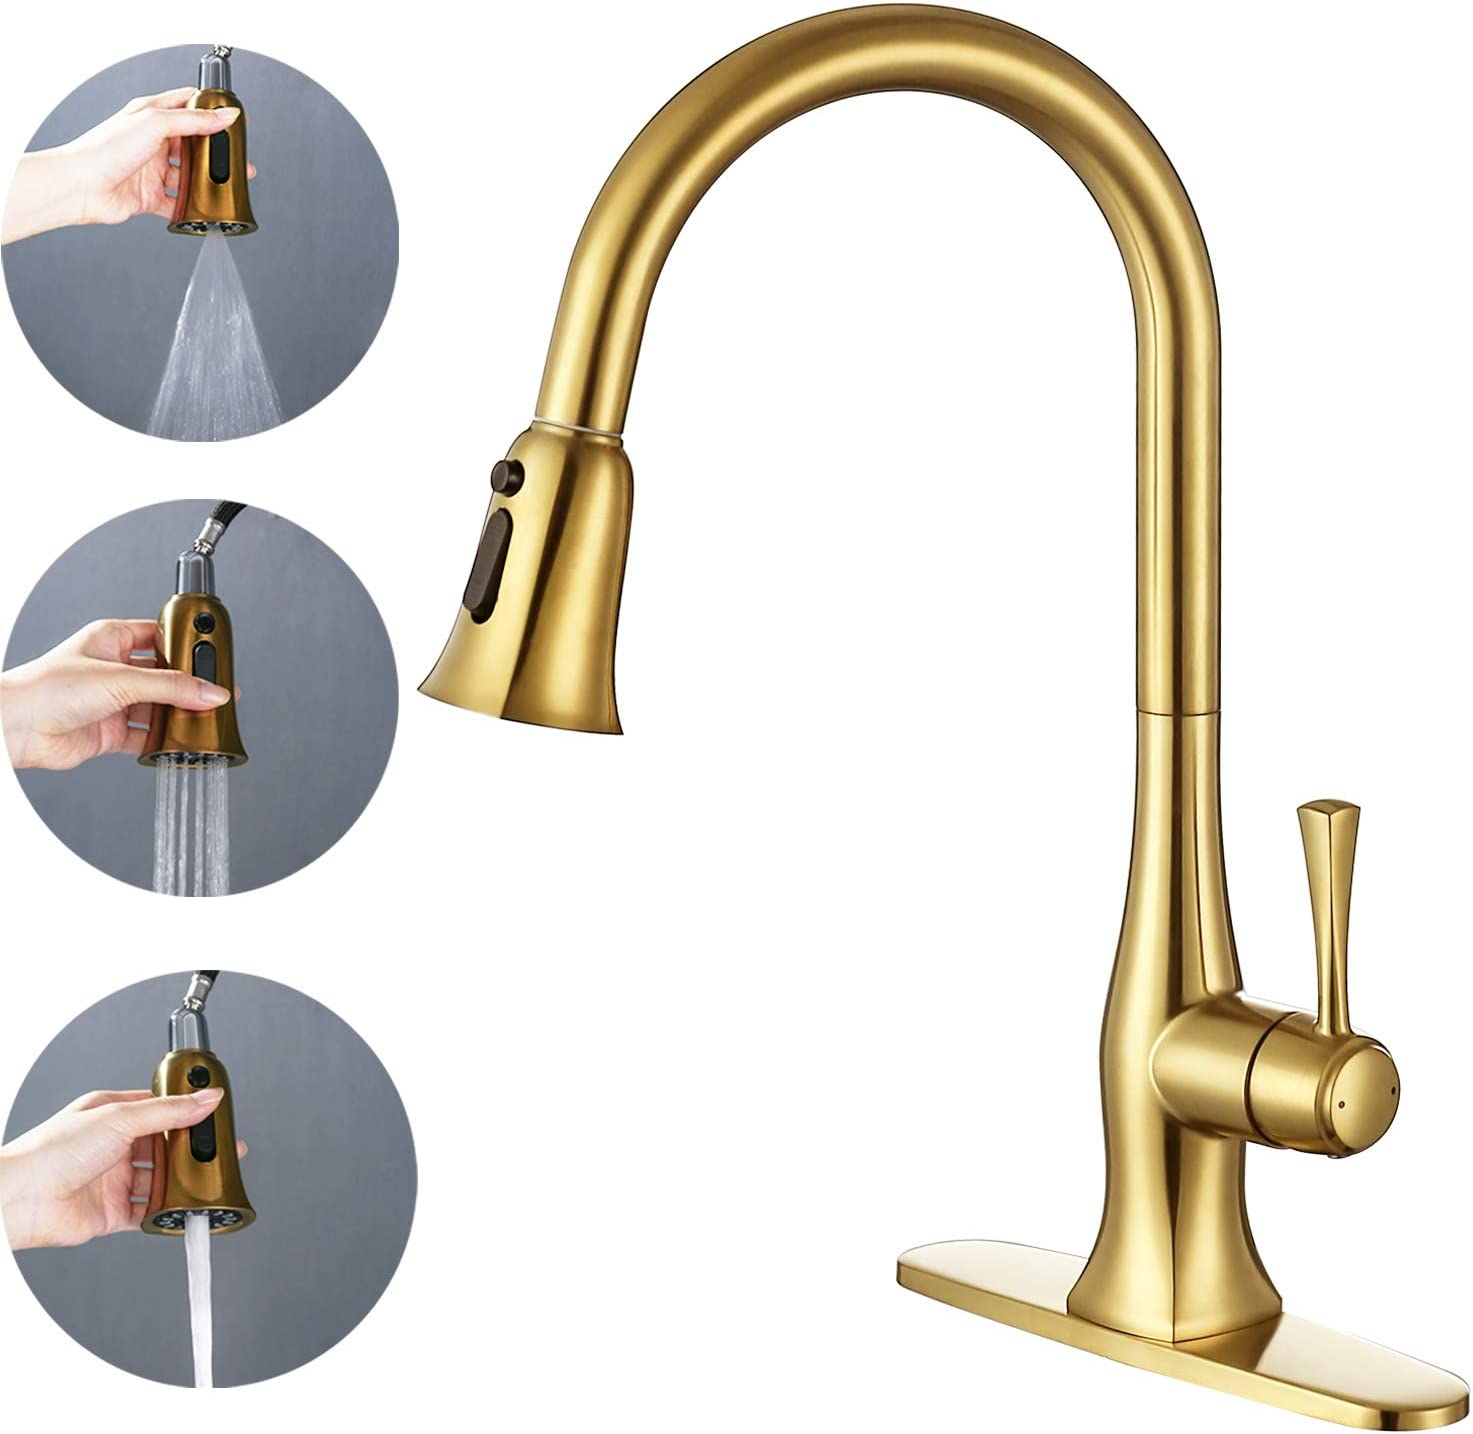 TRUSTMI Single Handle Brass Kitchen Faucet with Pull Down Sprayer,Commercial Kitchen Sink Faucet Swivel Bar Sink Vessel with 3 Ways Pull Out Spray Head /& Deck Plate Brushed Gold